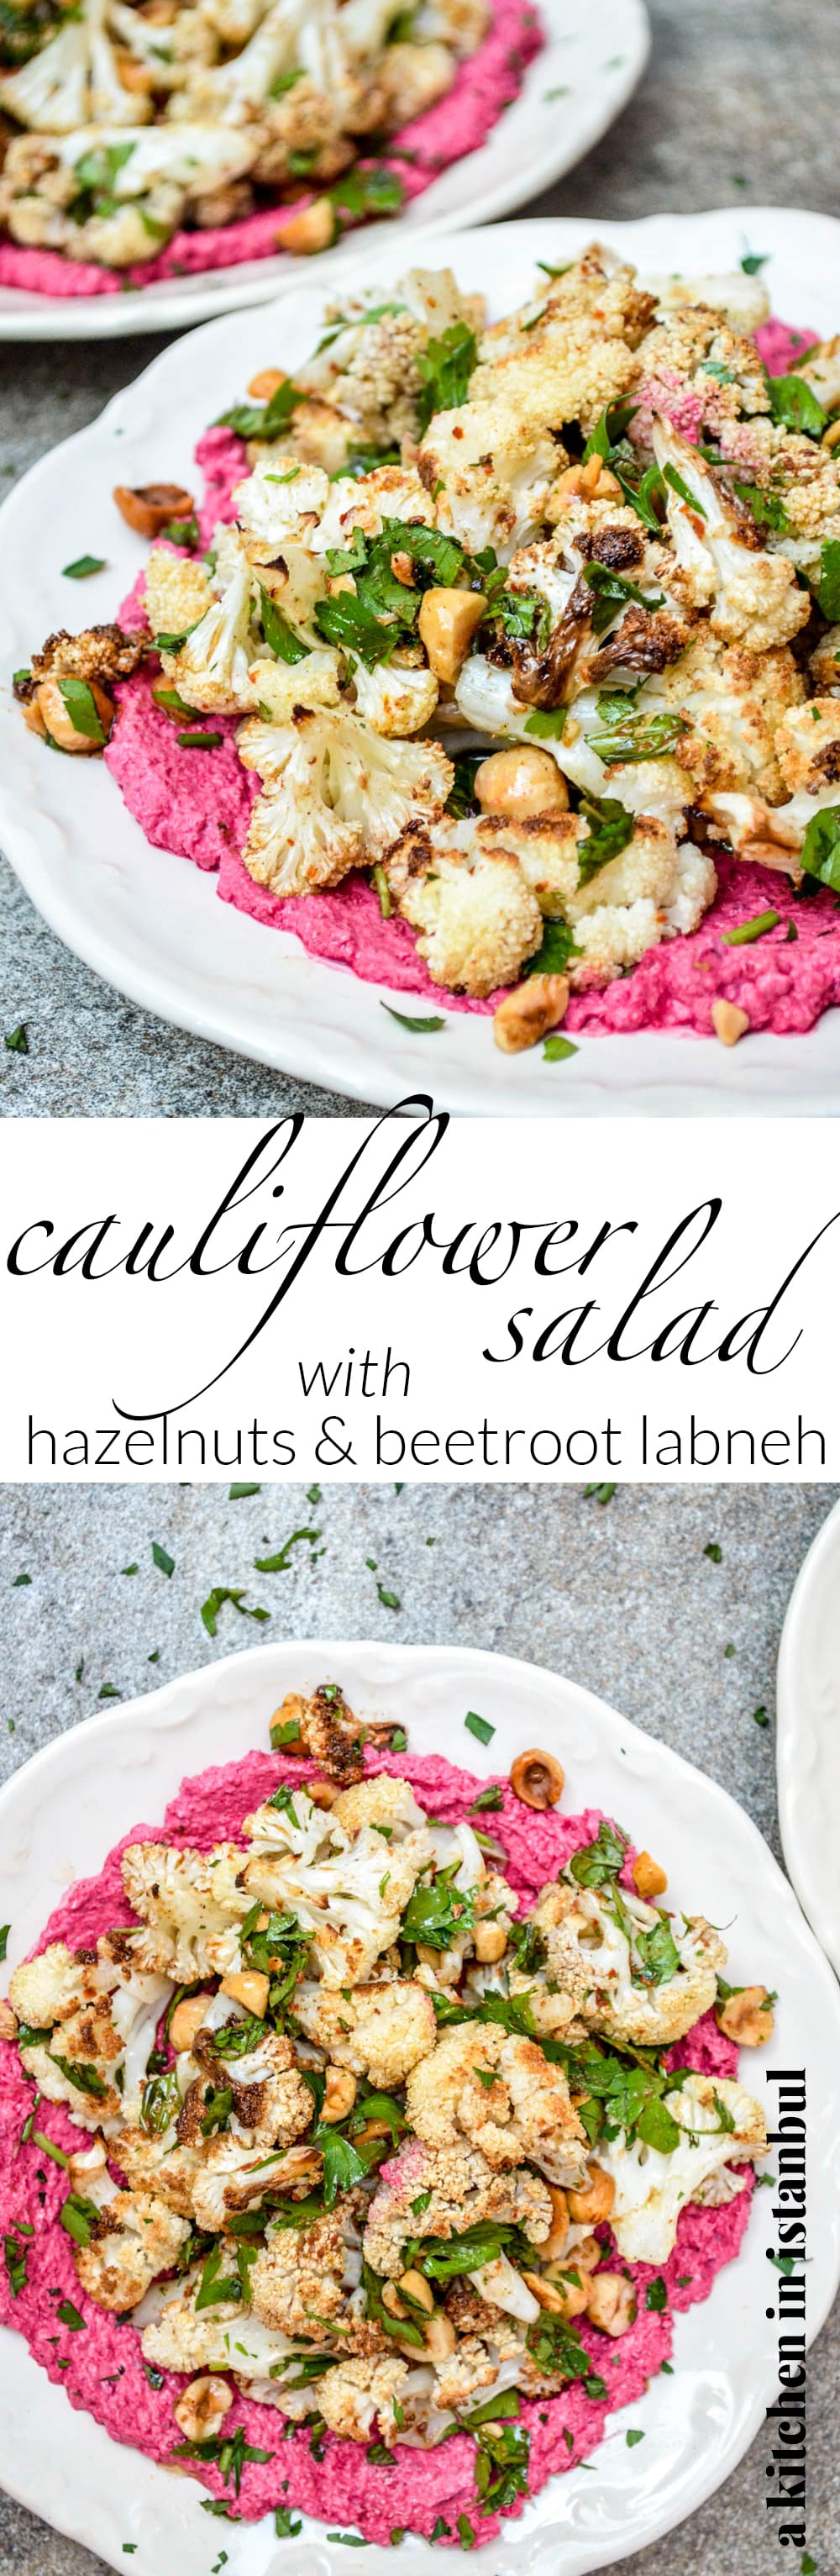 Cauliflower salad with hazelnuts & beetroot labneh - recipe / A kitchen in Istanbul